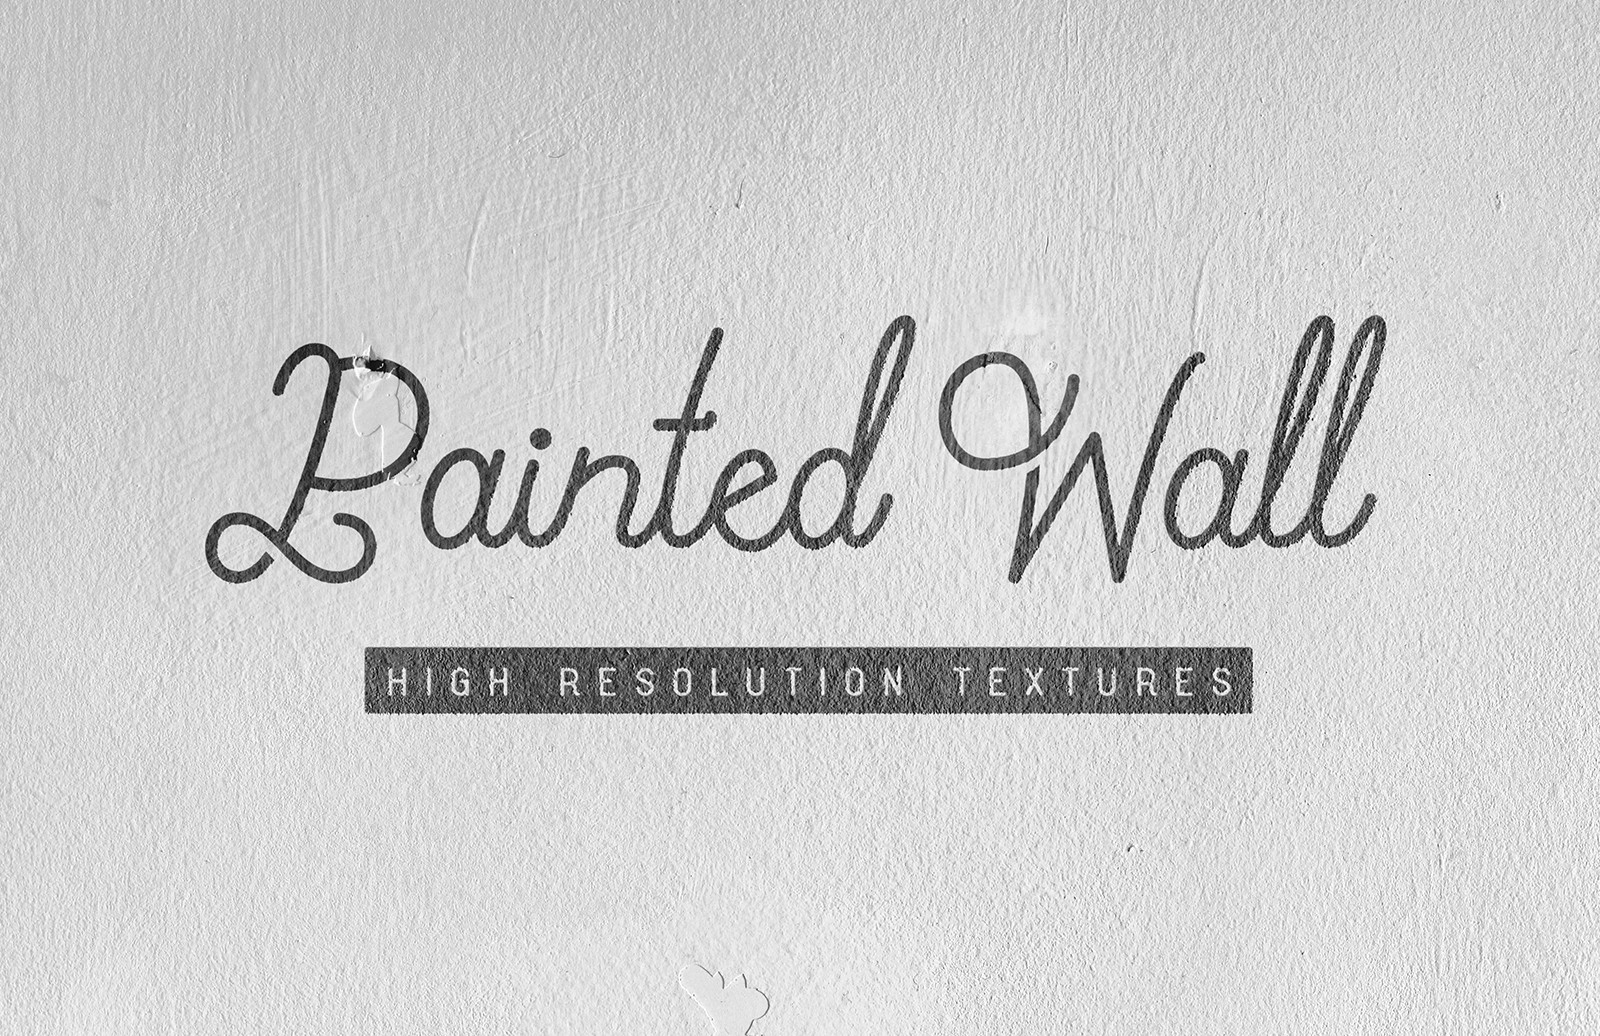 White Painted Wall Textures Preview 1A